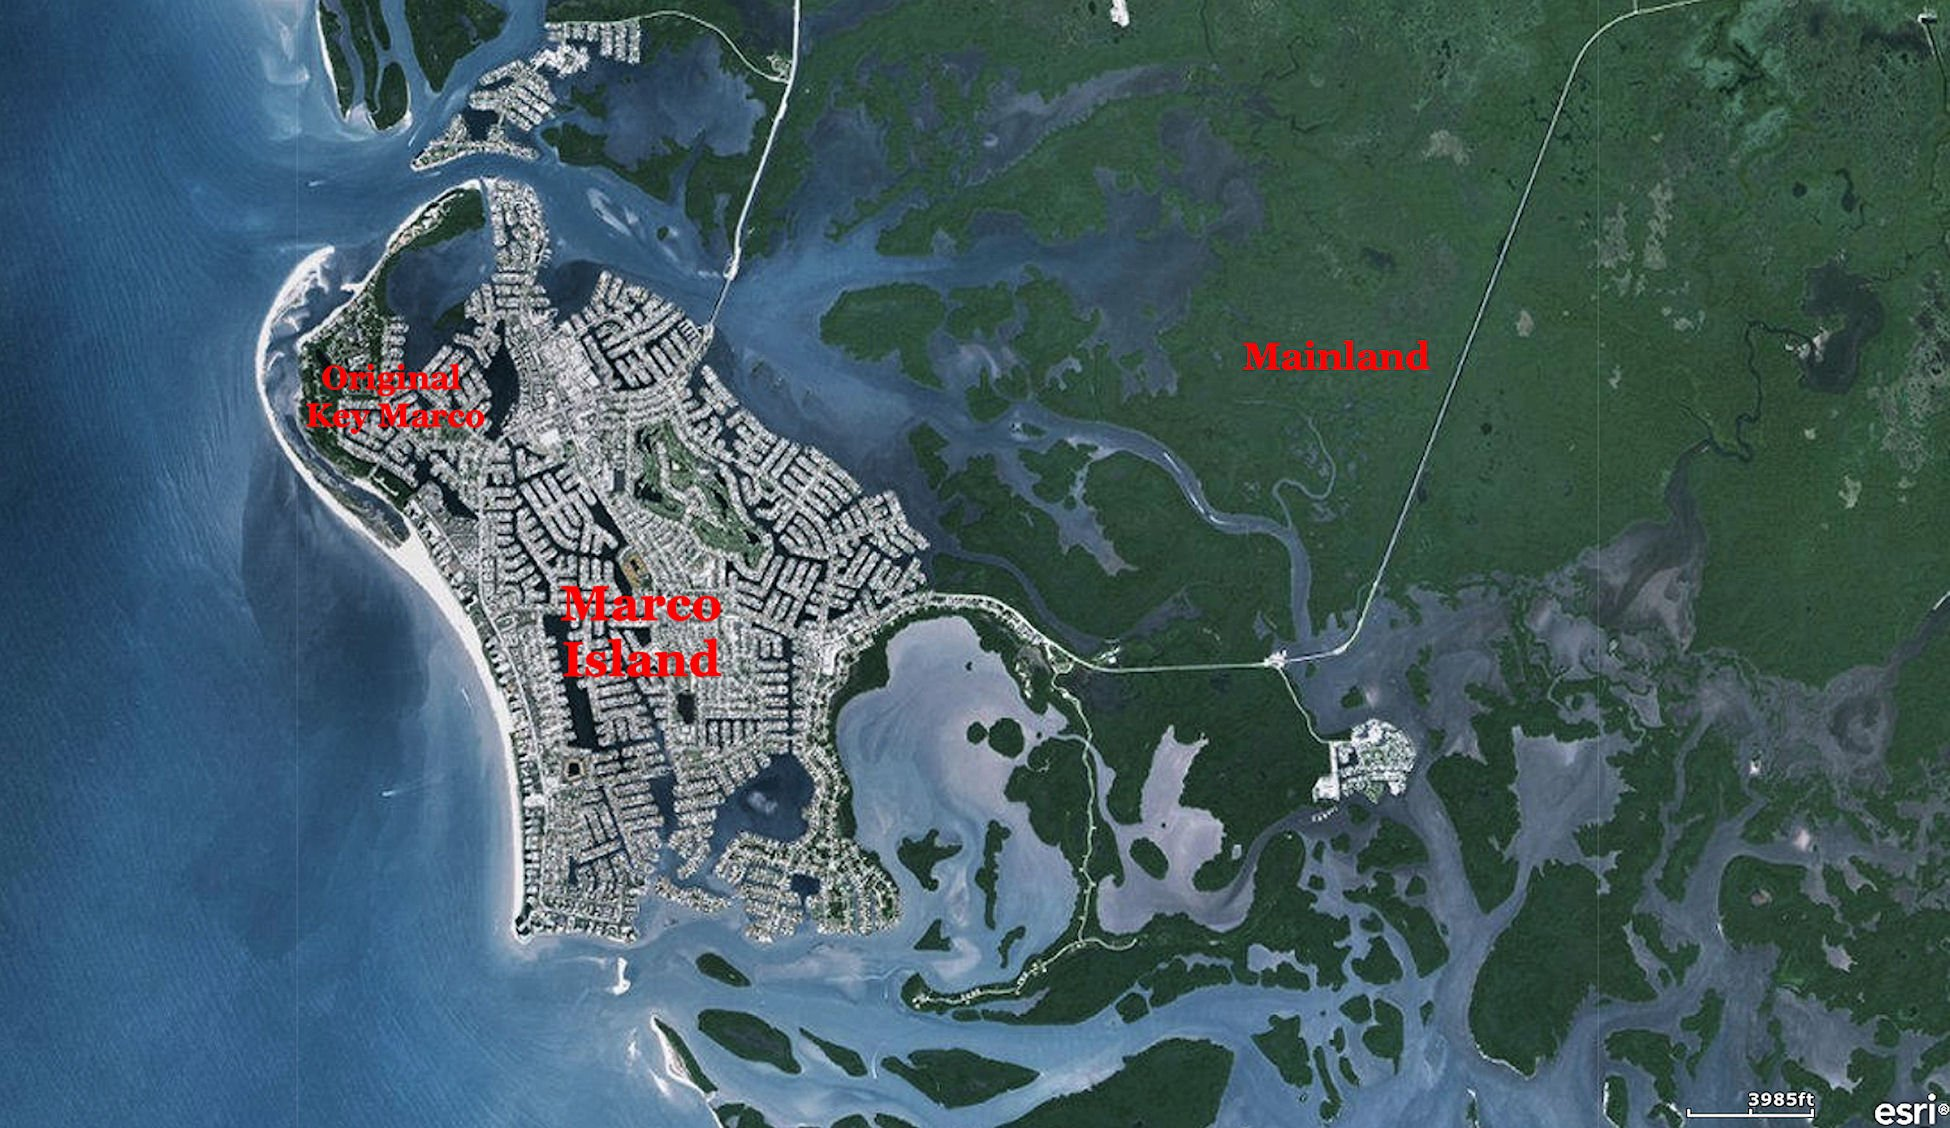 A satellite view of Marco Island